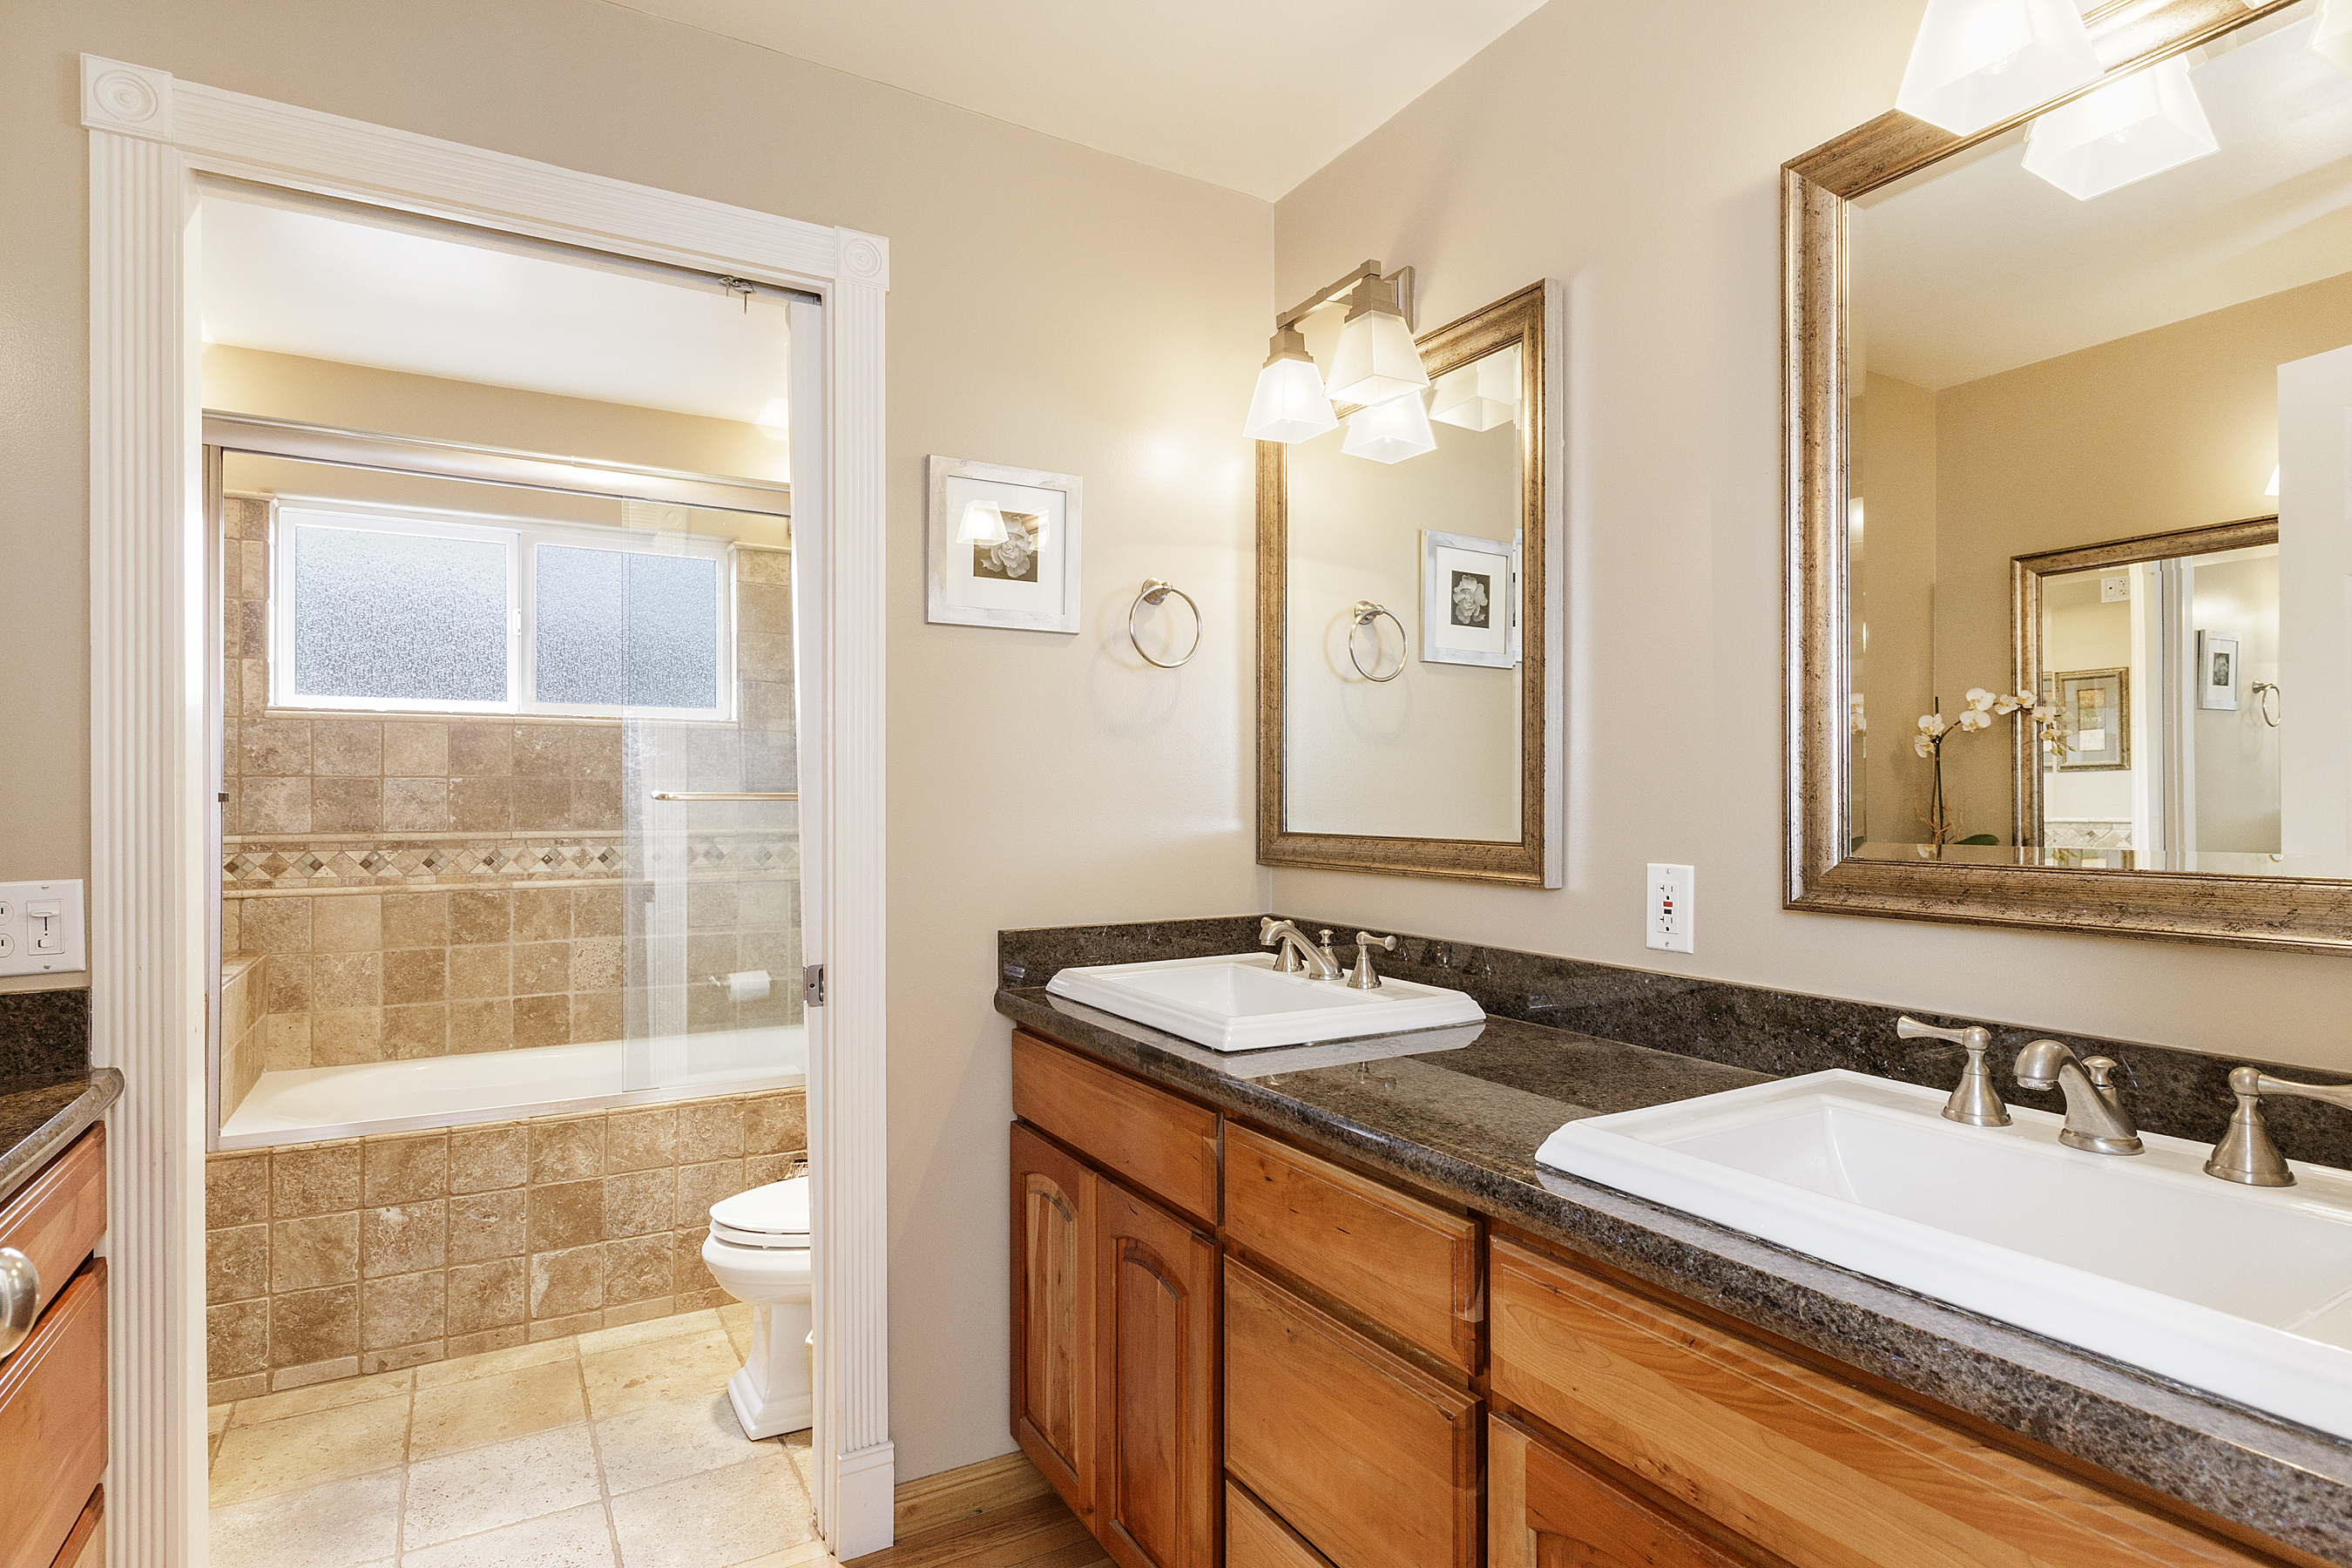 13-605Oakridge-bath-high-res